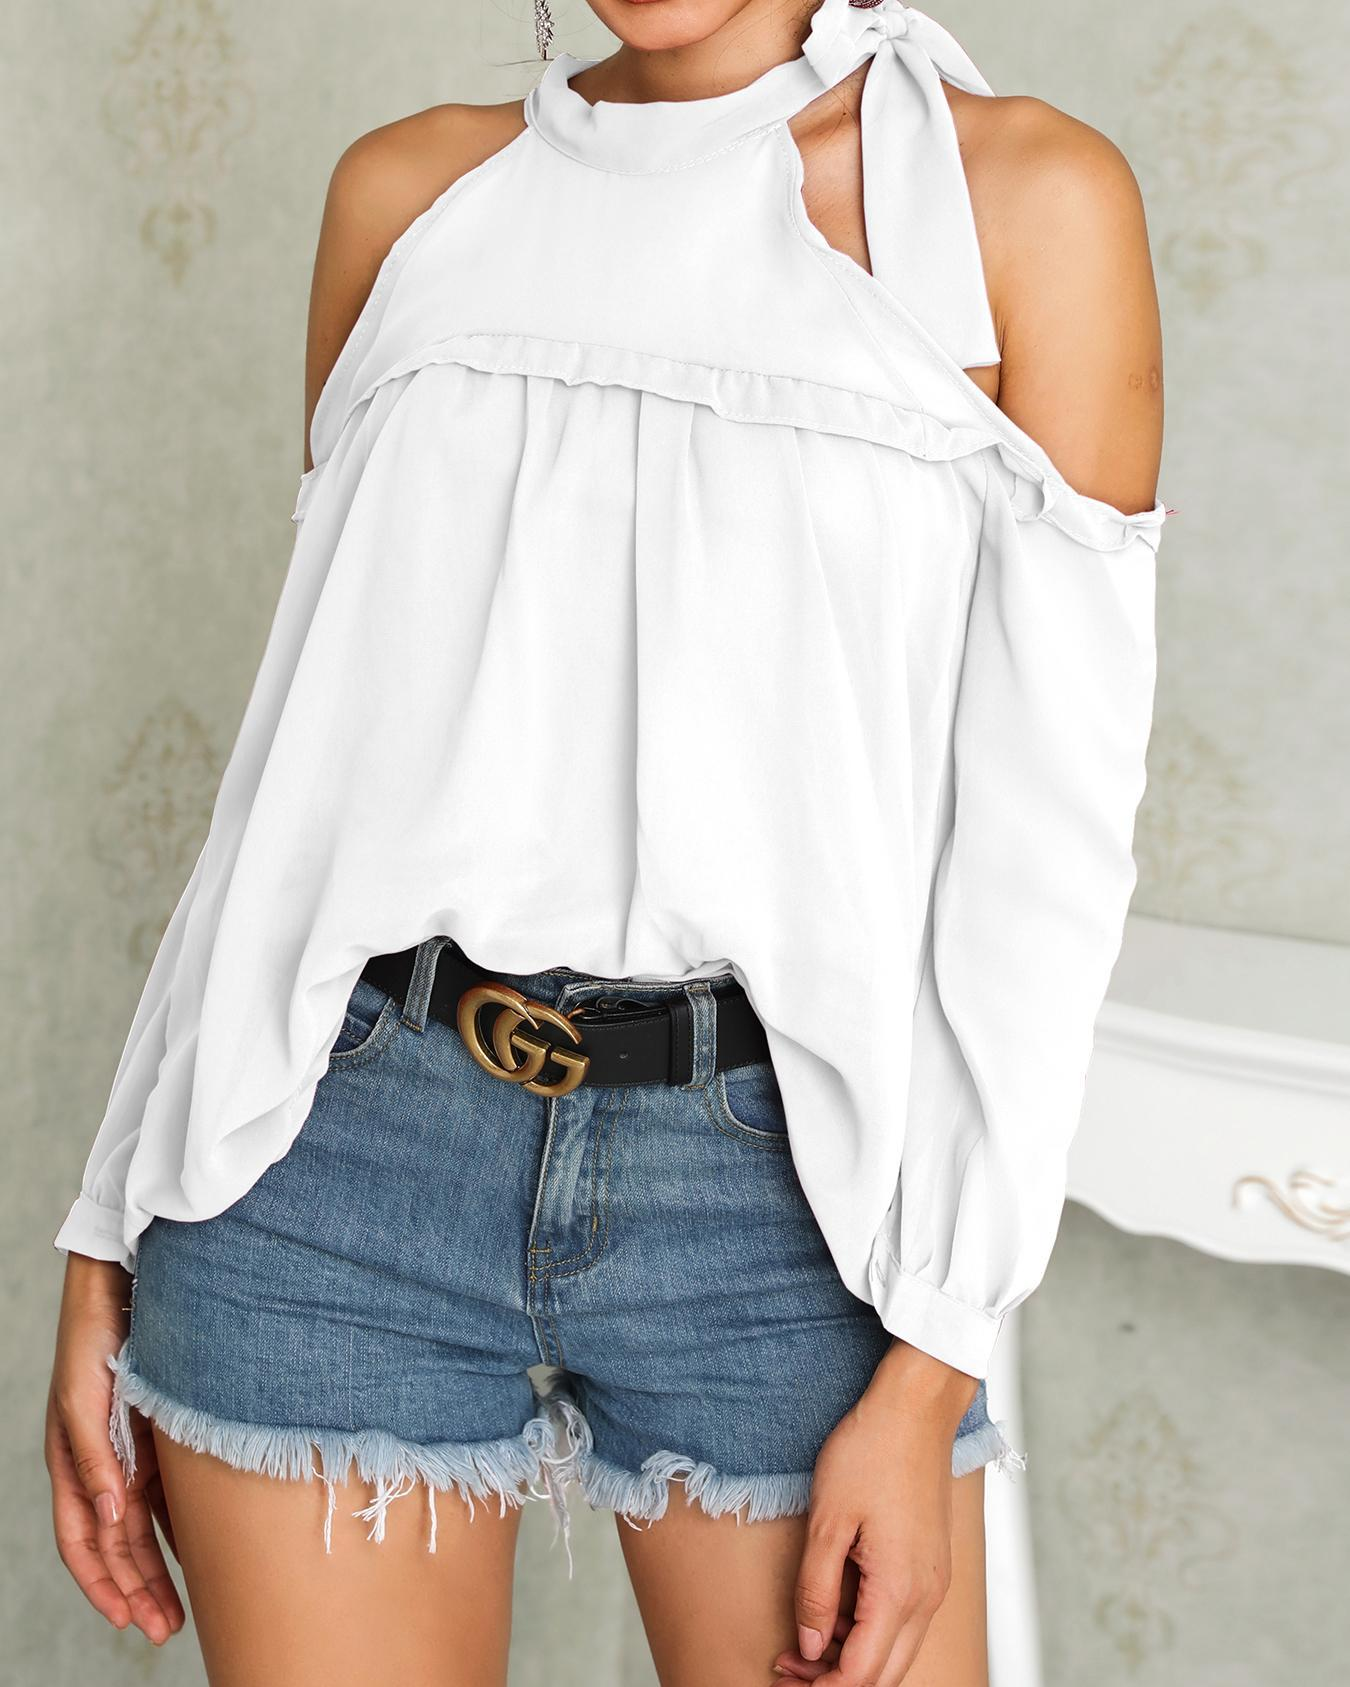 Outlet26 Tied Neck Cold Shoulder Frills Chiffon Blouse white